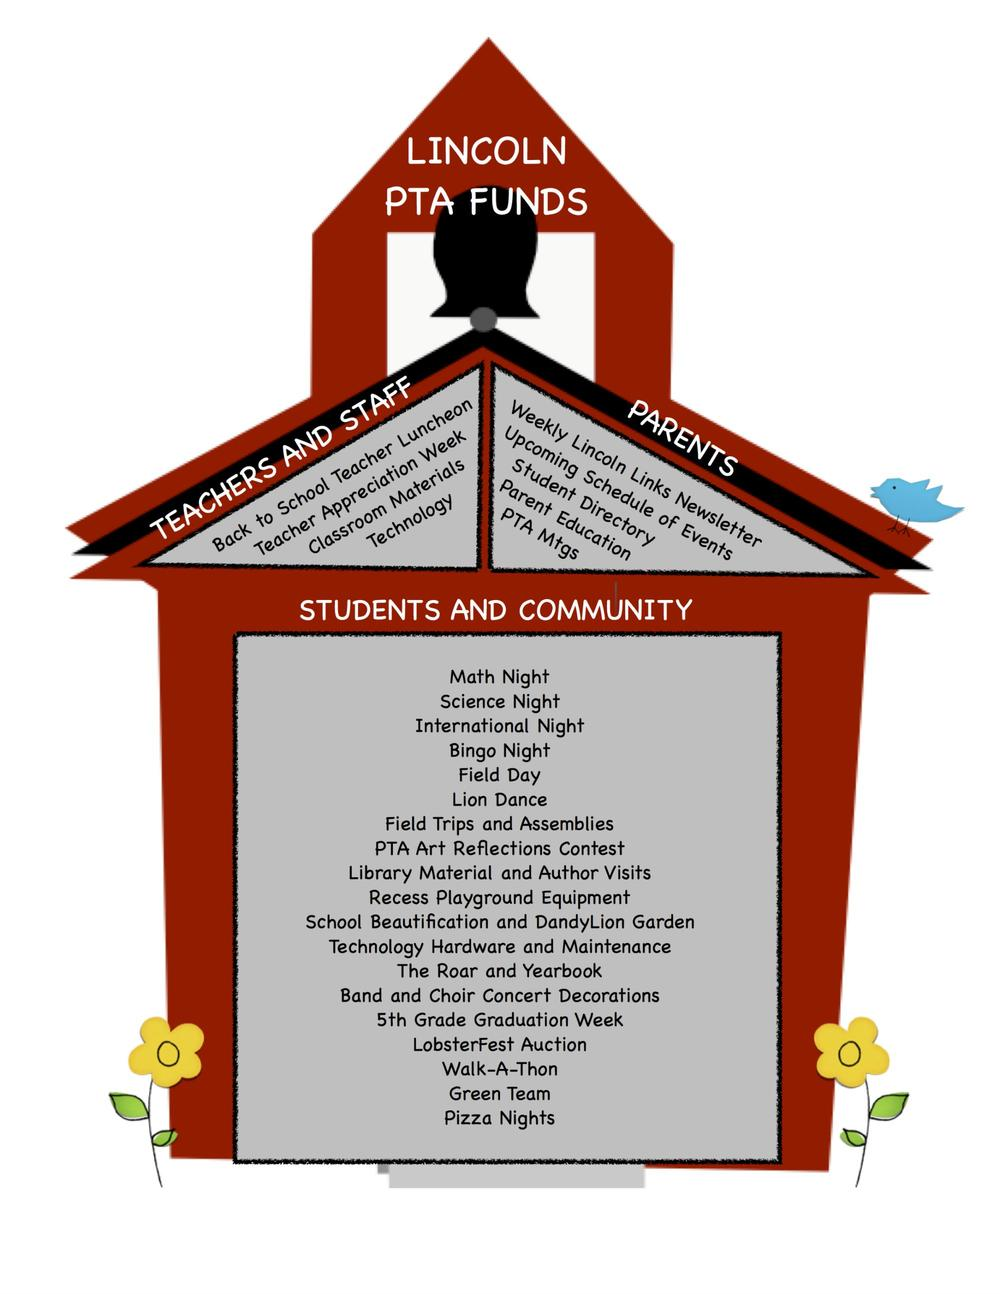 PTA Funds School House Graphic 2015 reduced.jpg